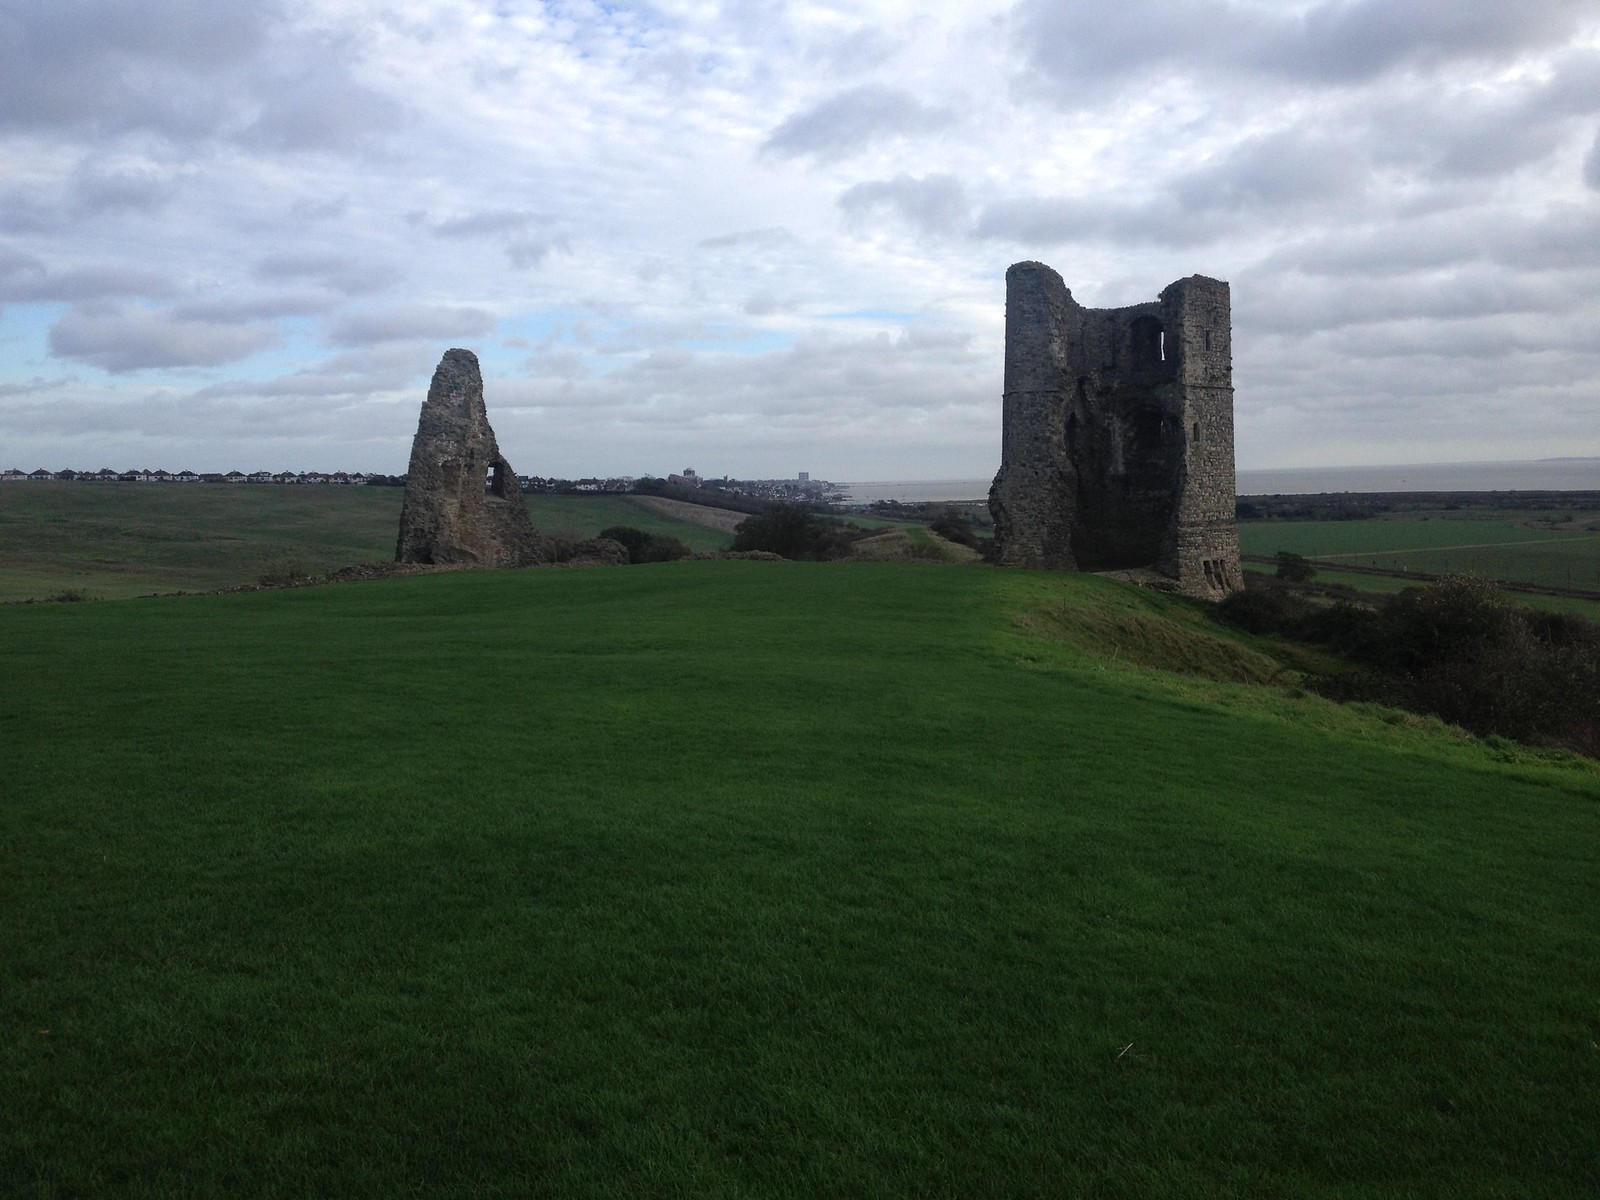 2015-11-15 13.06.11 Hadleigh Castle, Benfleet to Leigh-on-sea, SWC Short Walk 14